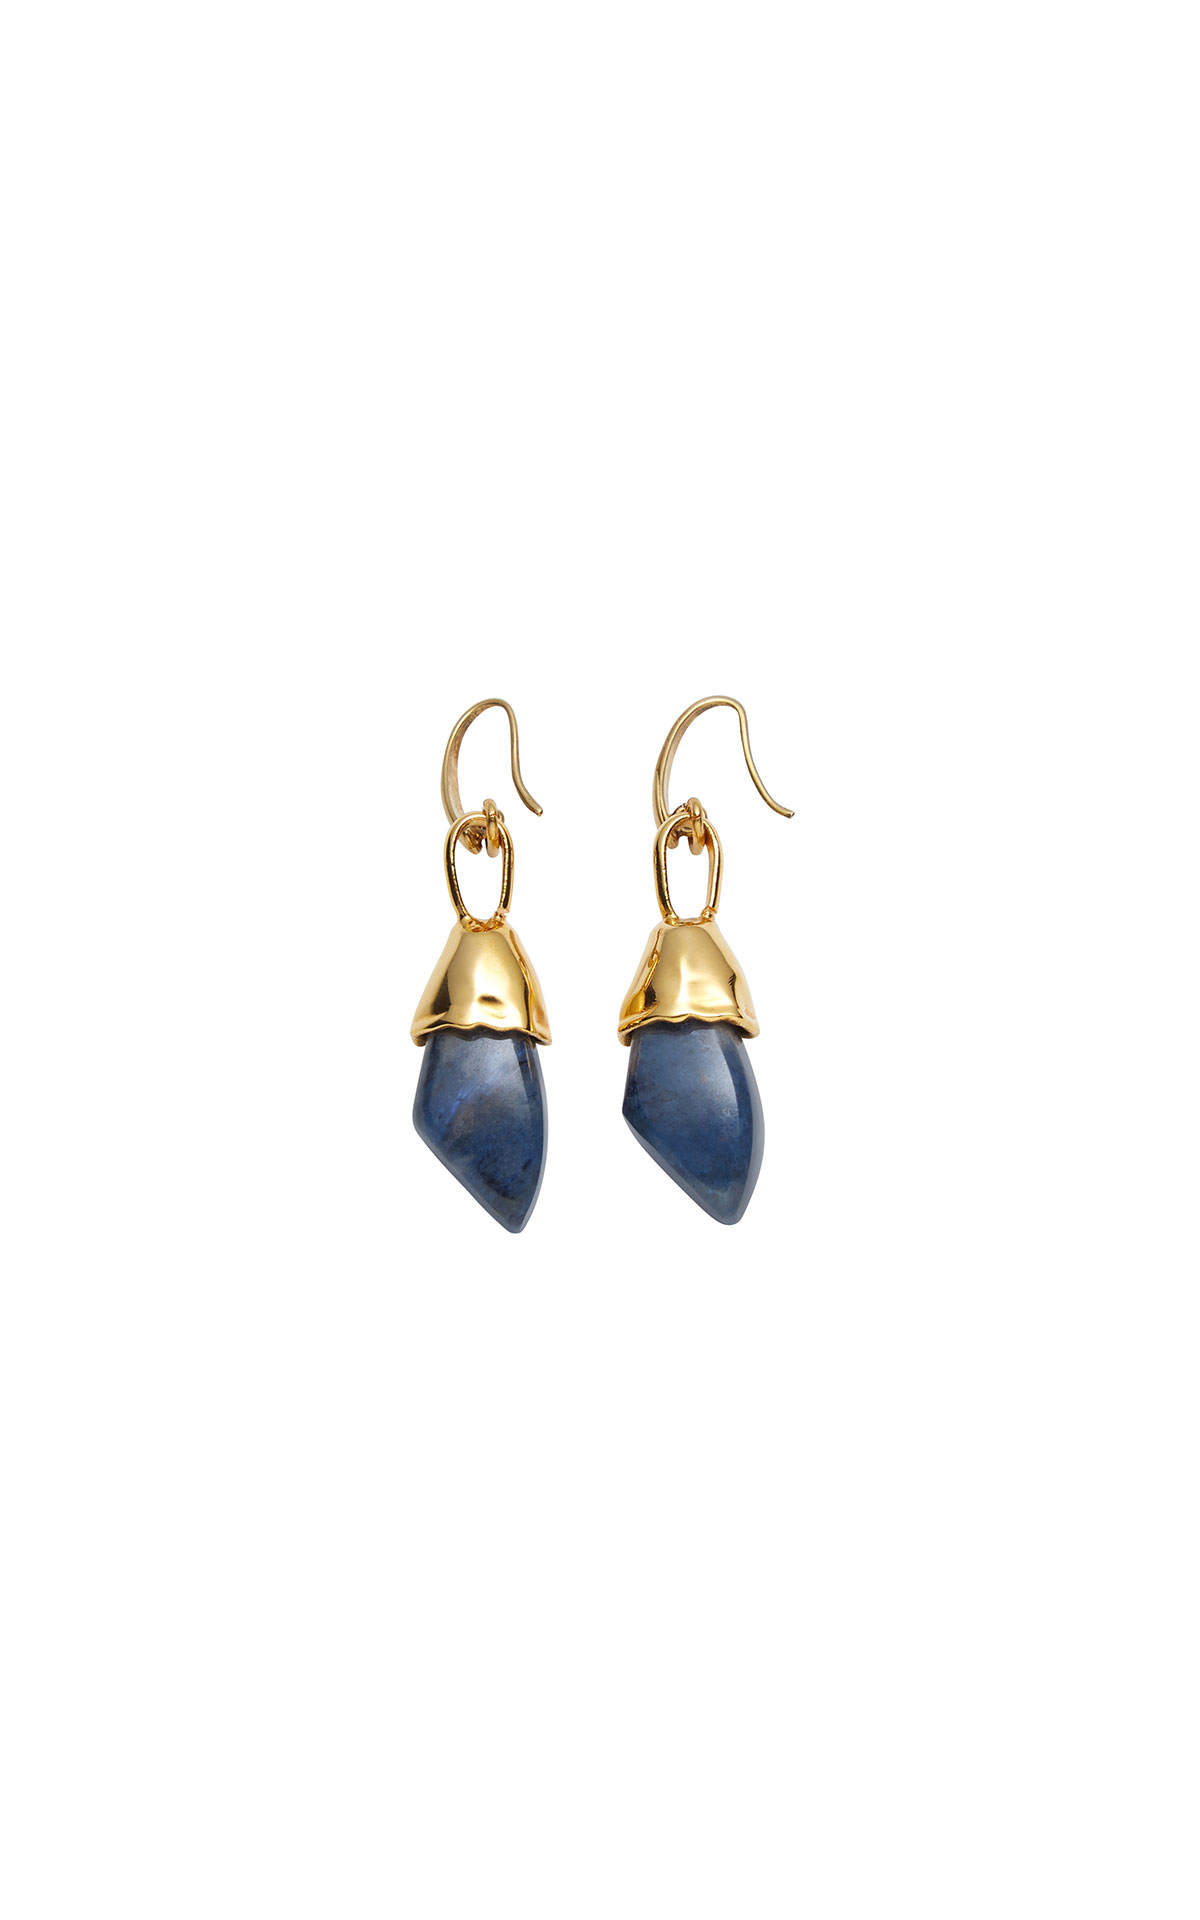 Marni Metal and stone earrings from Bicester Village